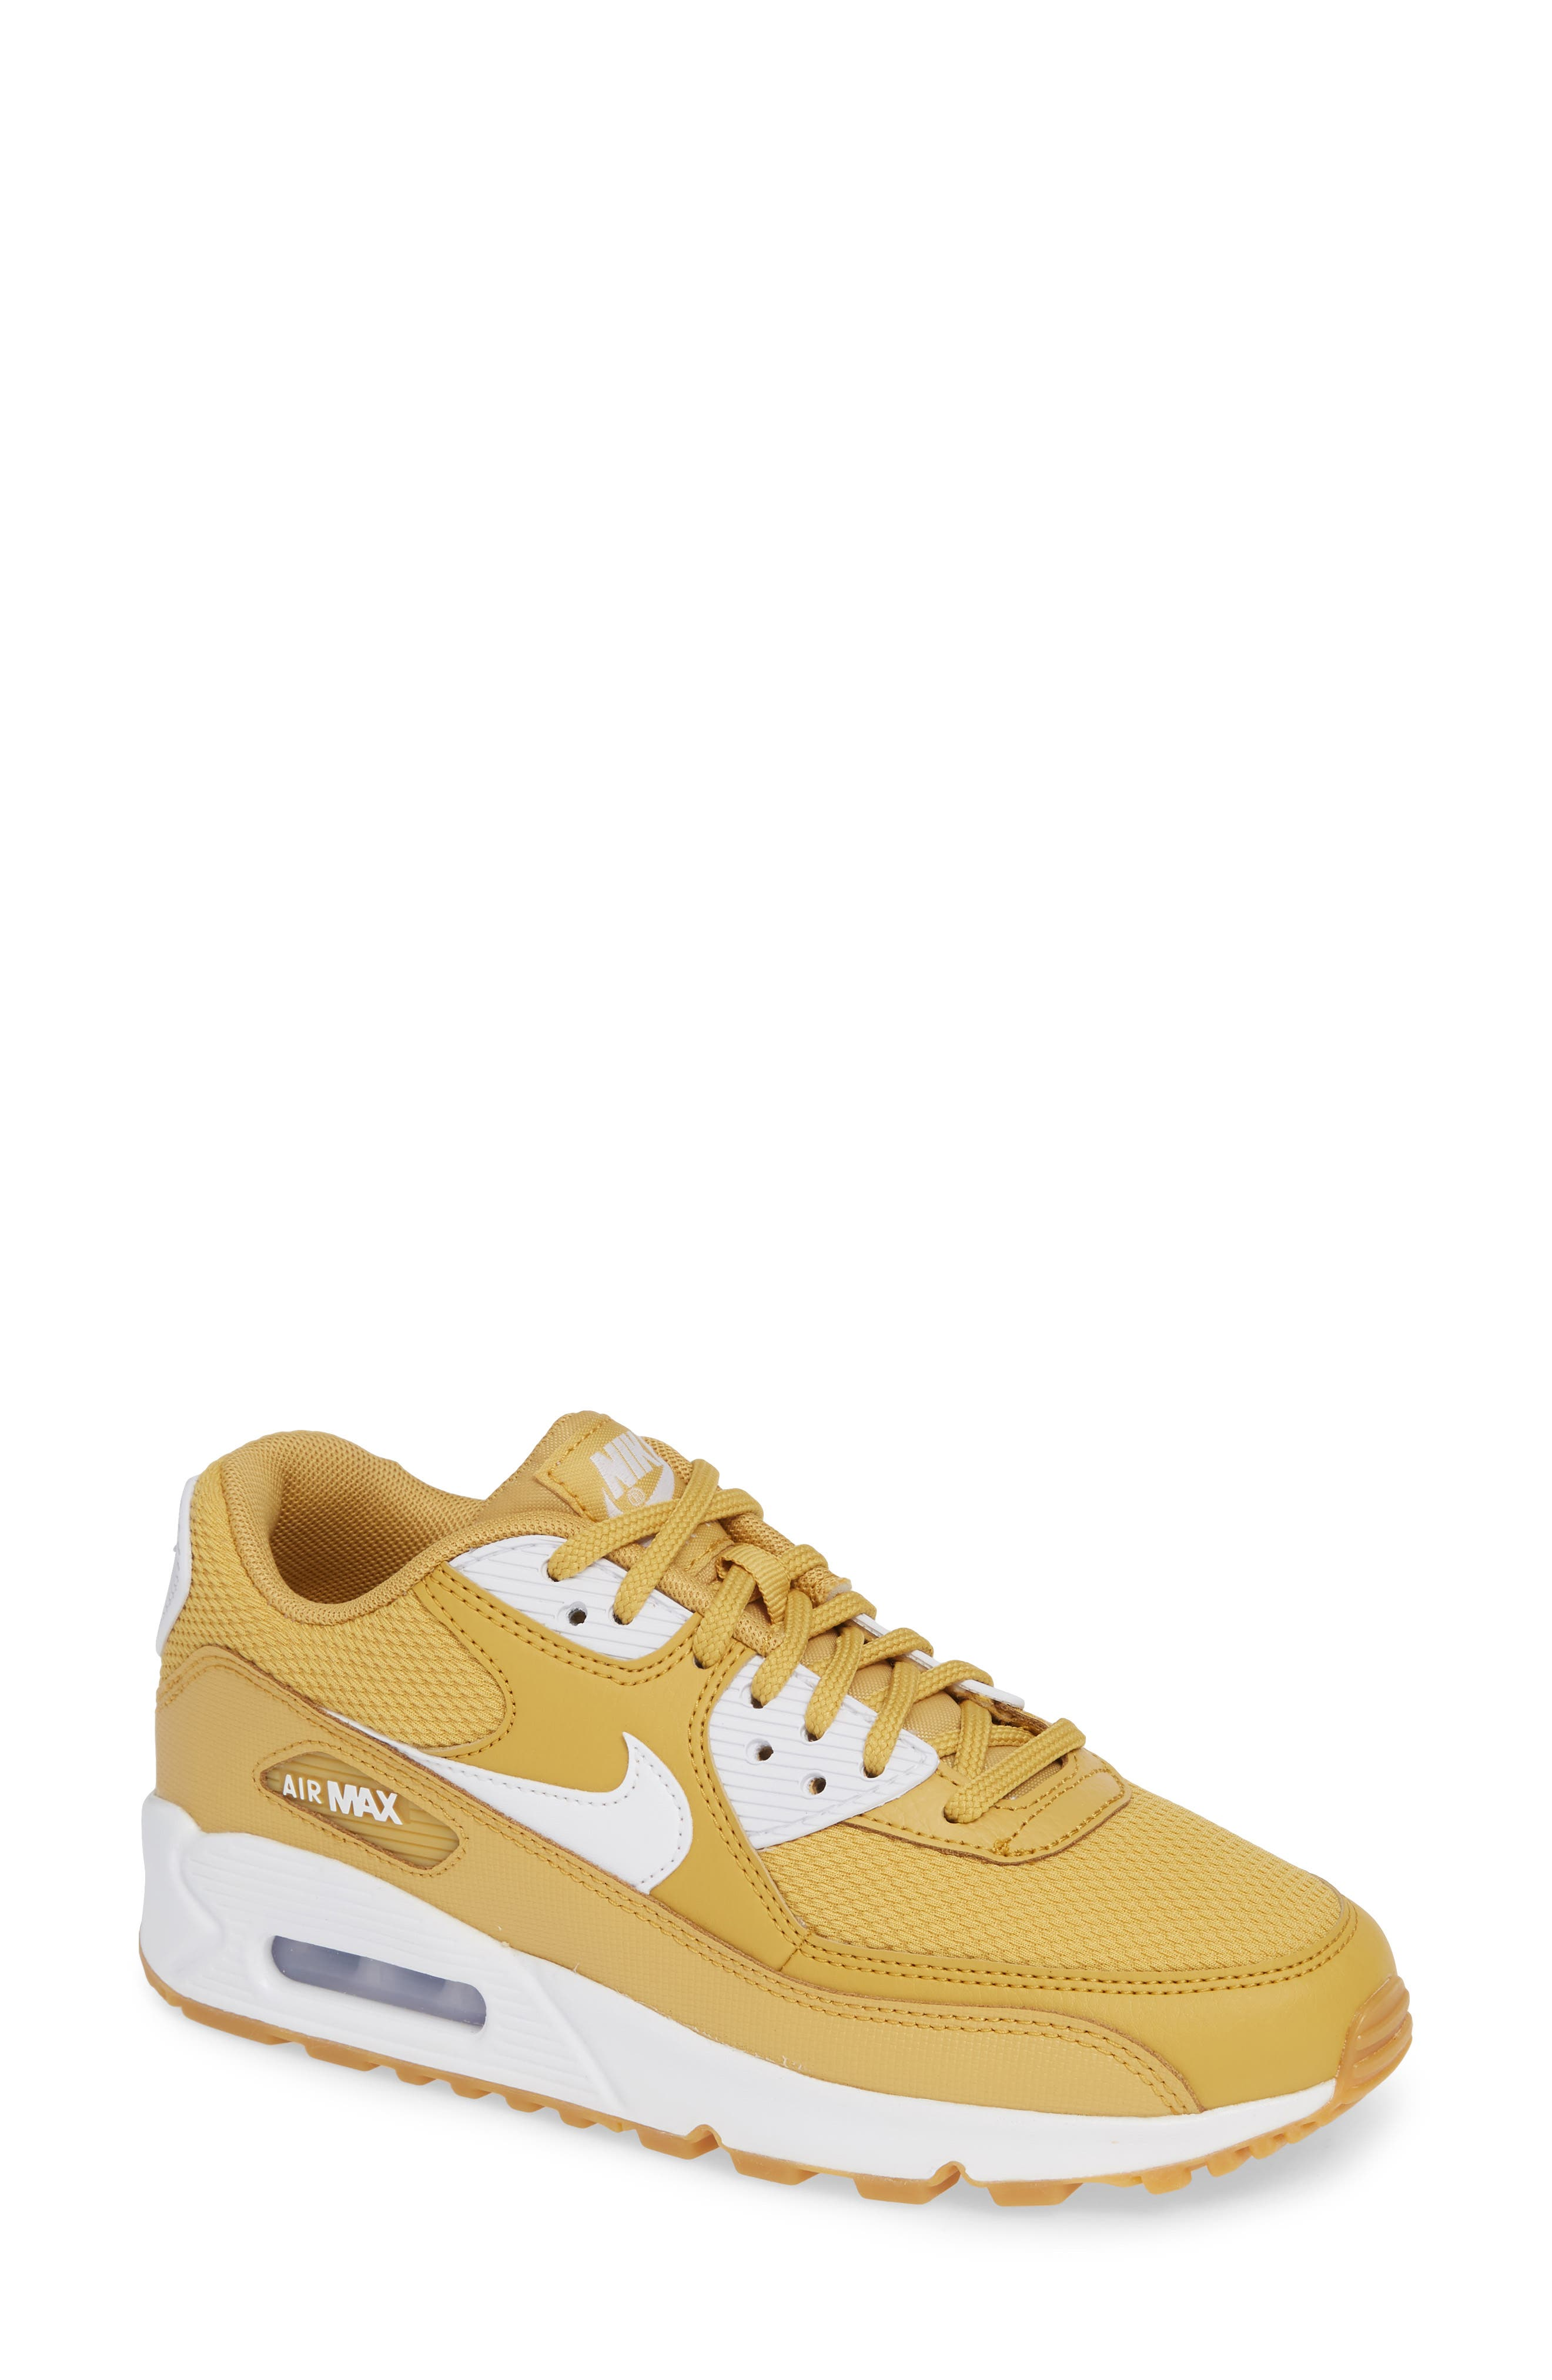 'Air Max 90' Sneaker,                             Main thumbnail 1, color,                             WHEAT GOLD/ WHITE/ LIGHT BROWN